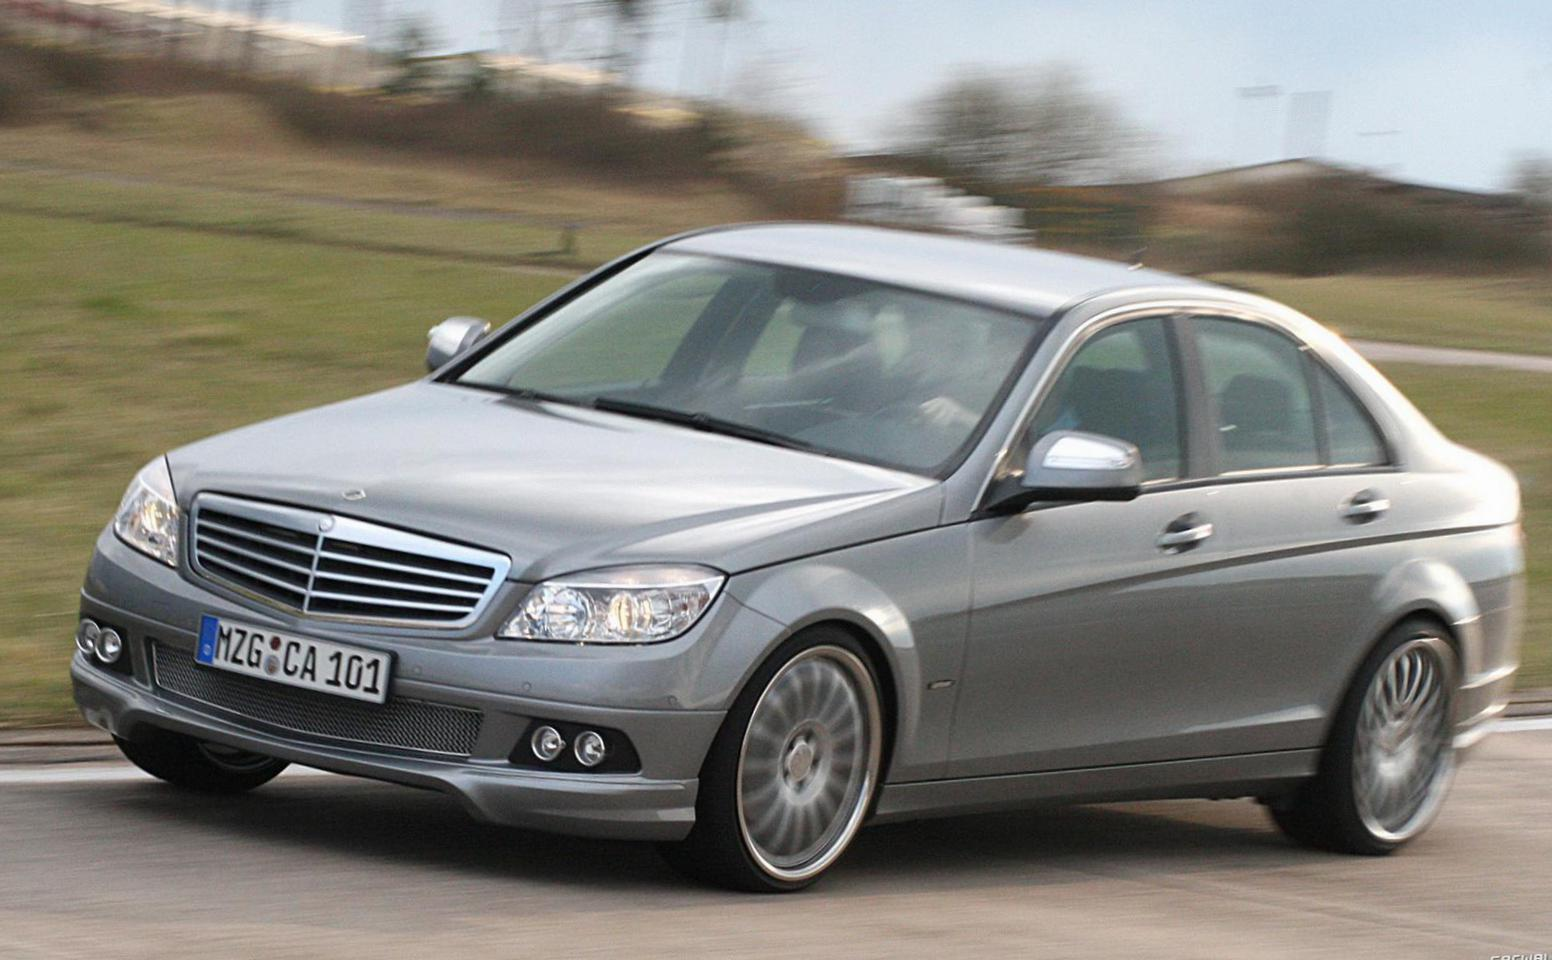 Mercedes C-Class (W204) Specifications 2009